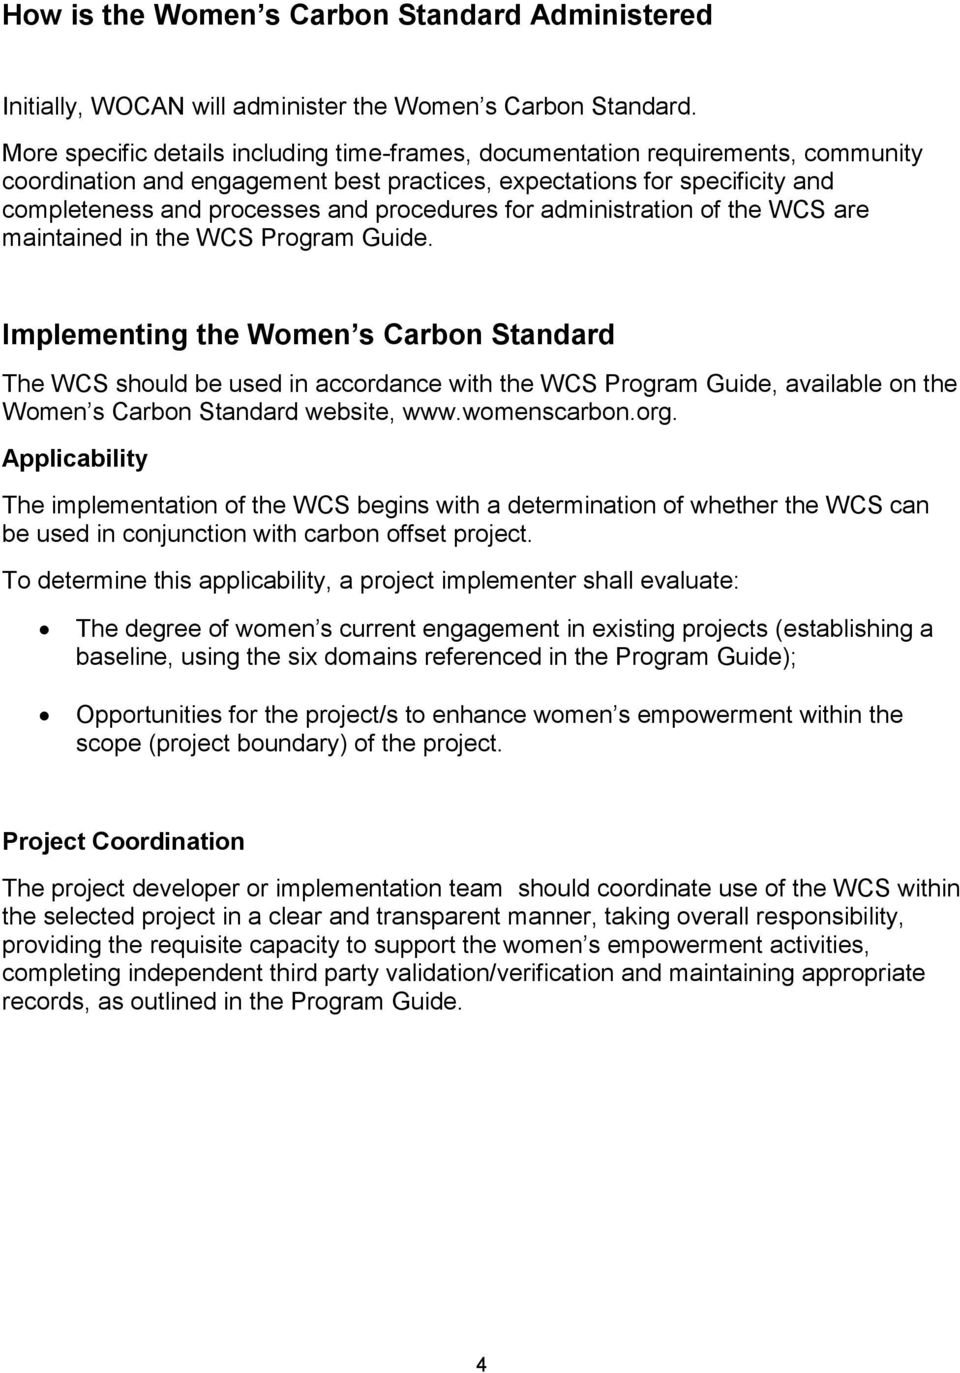 procedures for administration of the WCS are maintained in the WCS Program Guide.